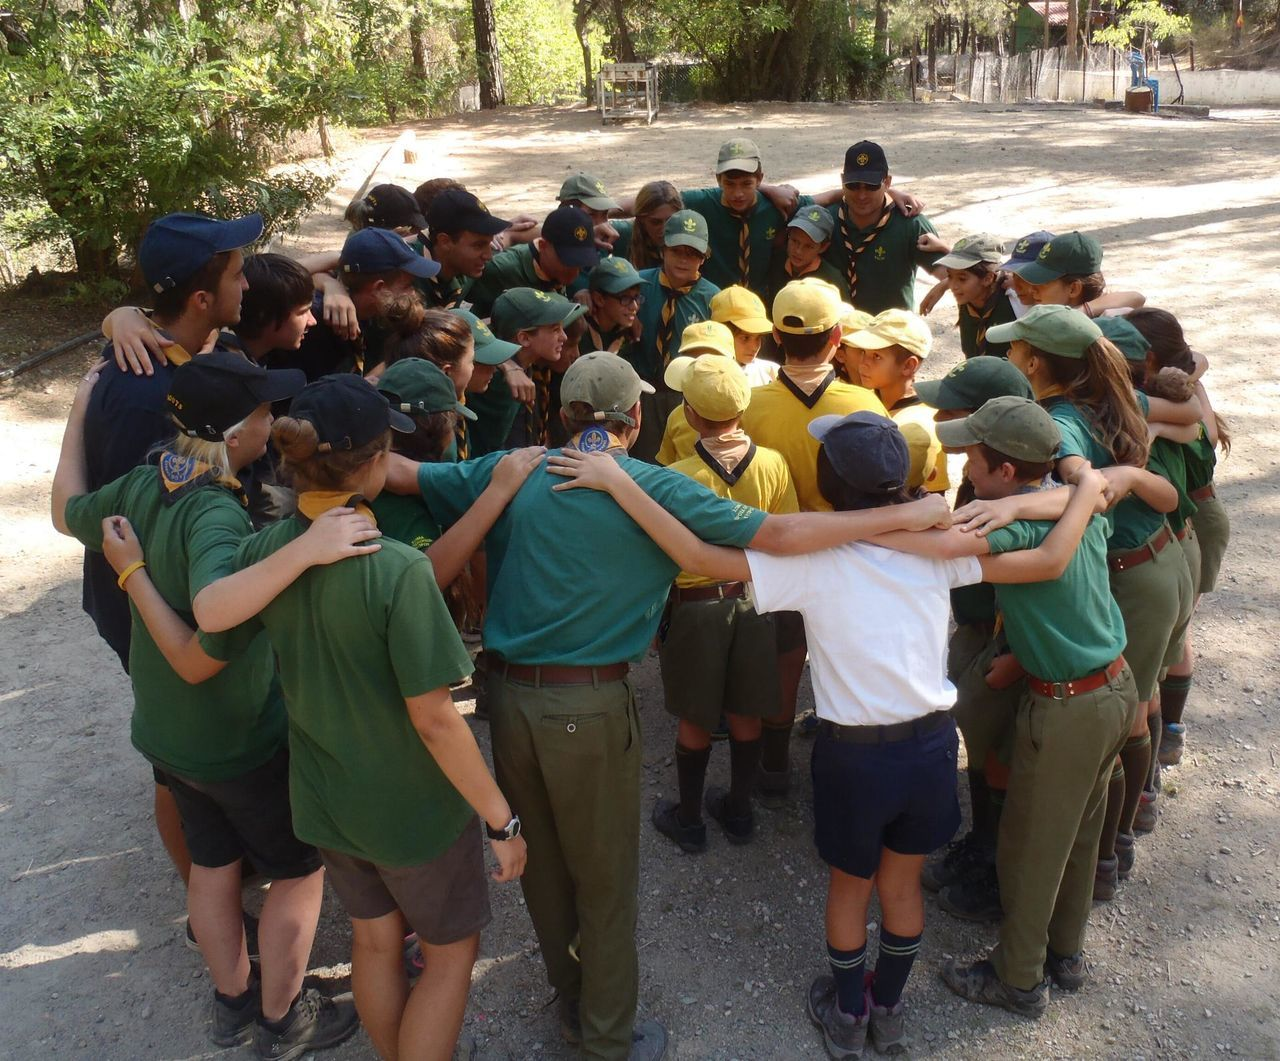 Abundance Casual Clothing Children Group Cubs And Scouts Group Hug Day Explorers Scouts And Cubs Group Hug Footpath Group Of People Large Group Of Objects Leisure Activity Lifestyles Nature Outdoors Park Scout Group Scout Group Hug Scout Pack Scouts Scouts Friendship Vacations